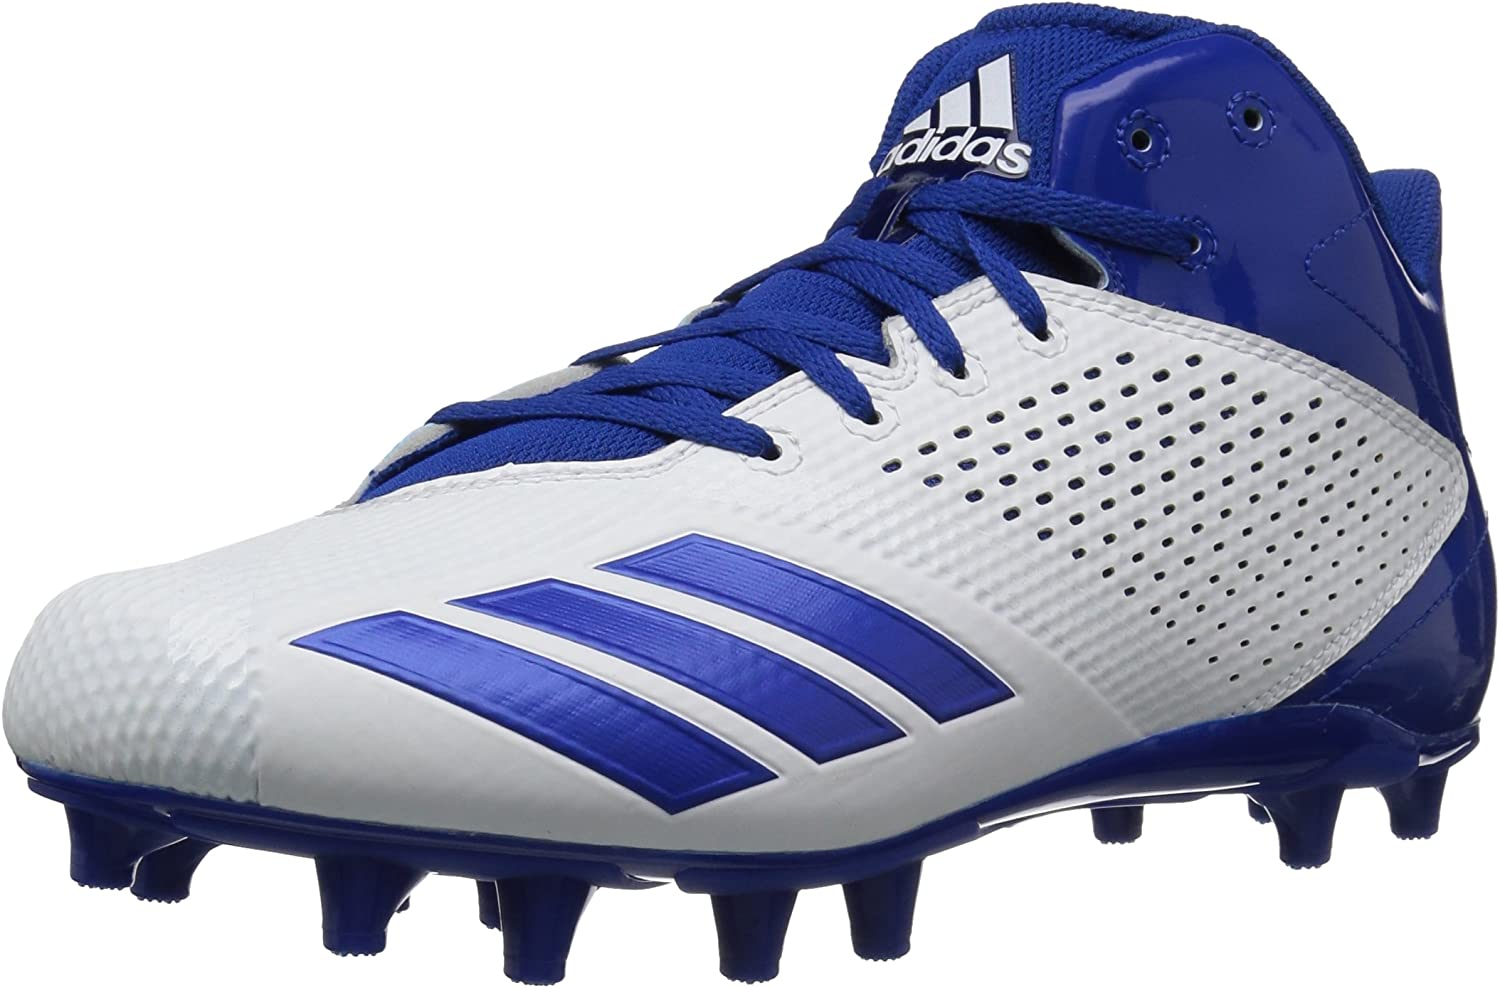 Adidas Men's Freak X Carbon Mid Football shoes, White Croyal, 18 M US